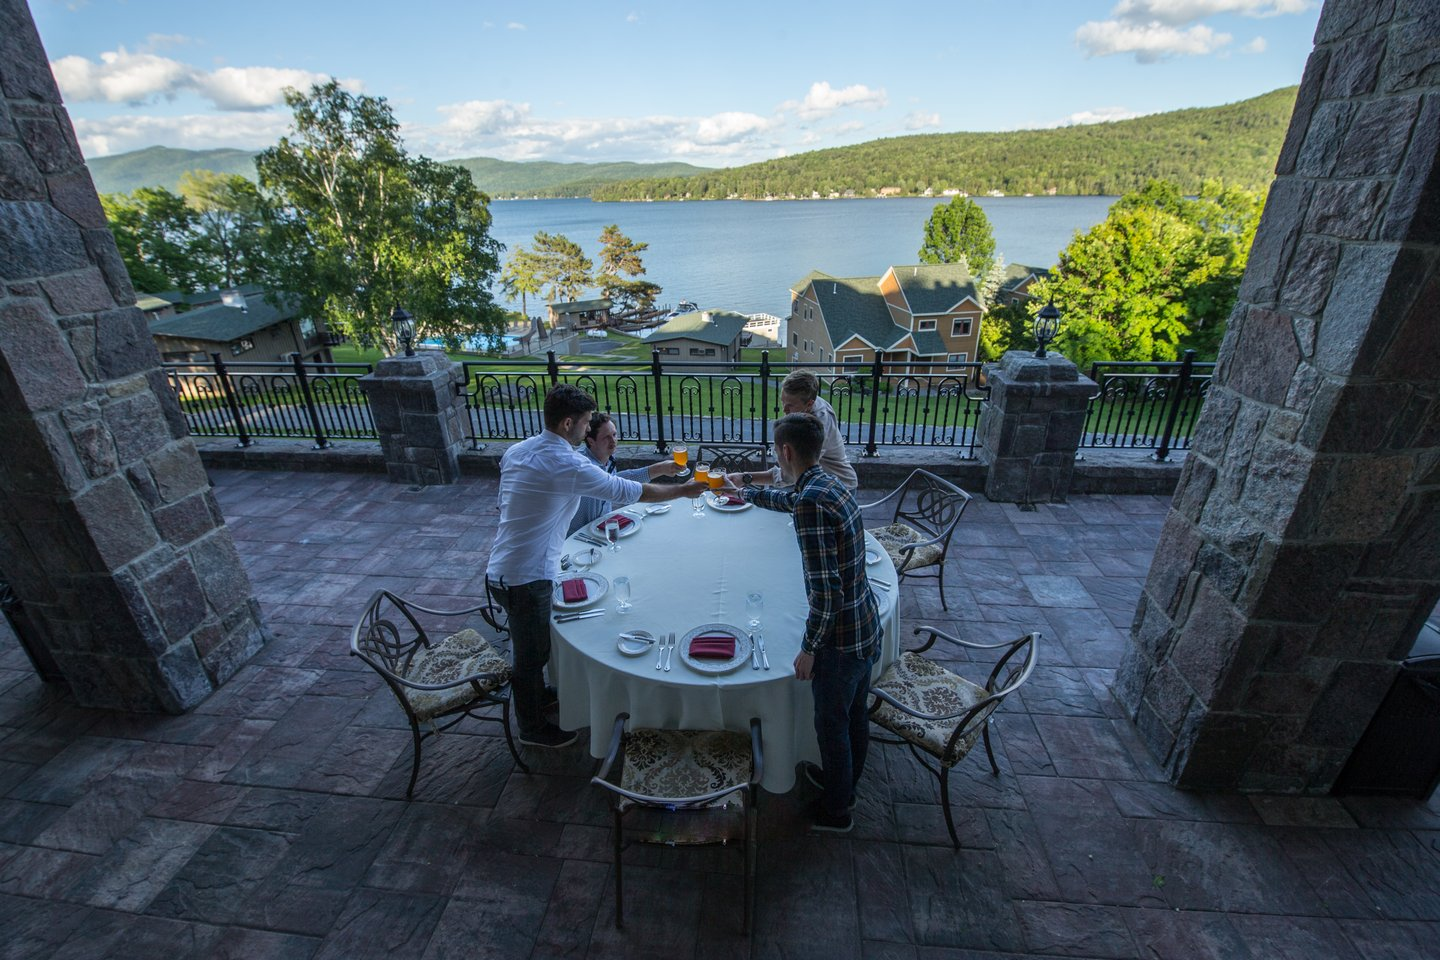 5 Things Event Planners Should Know About the Lake George Area